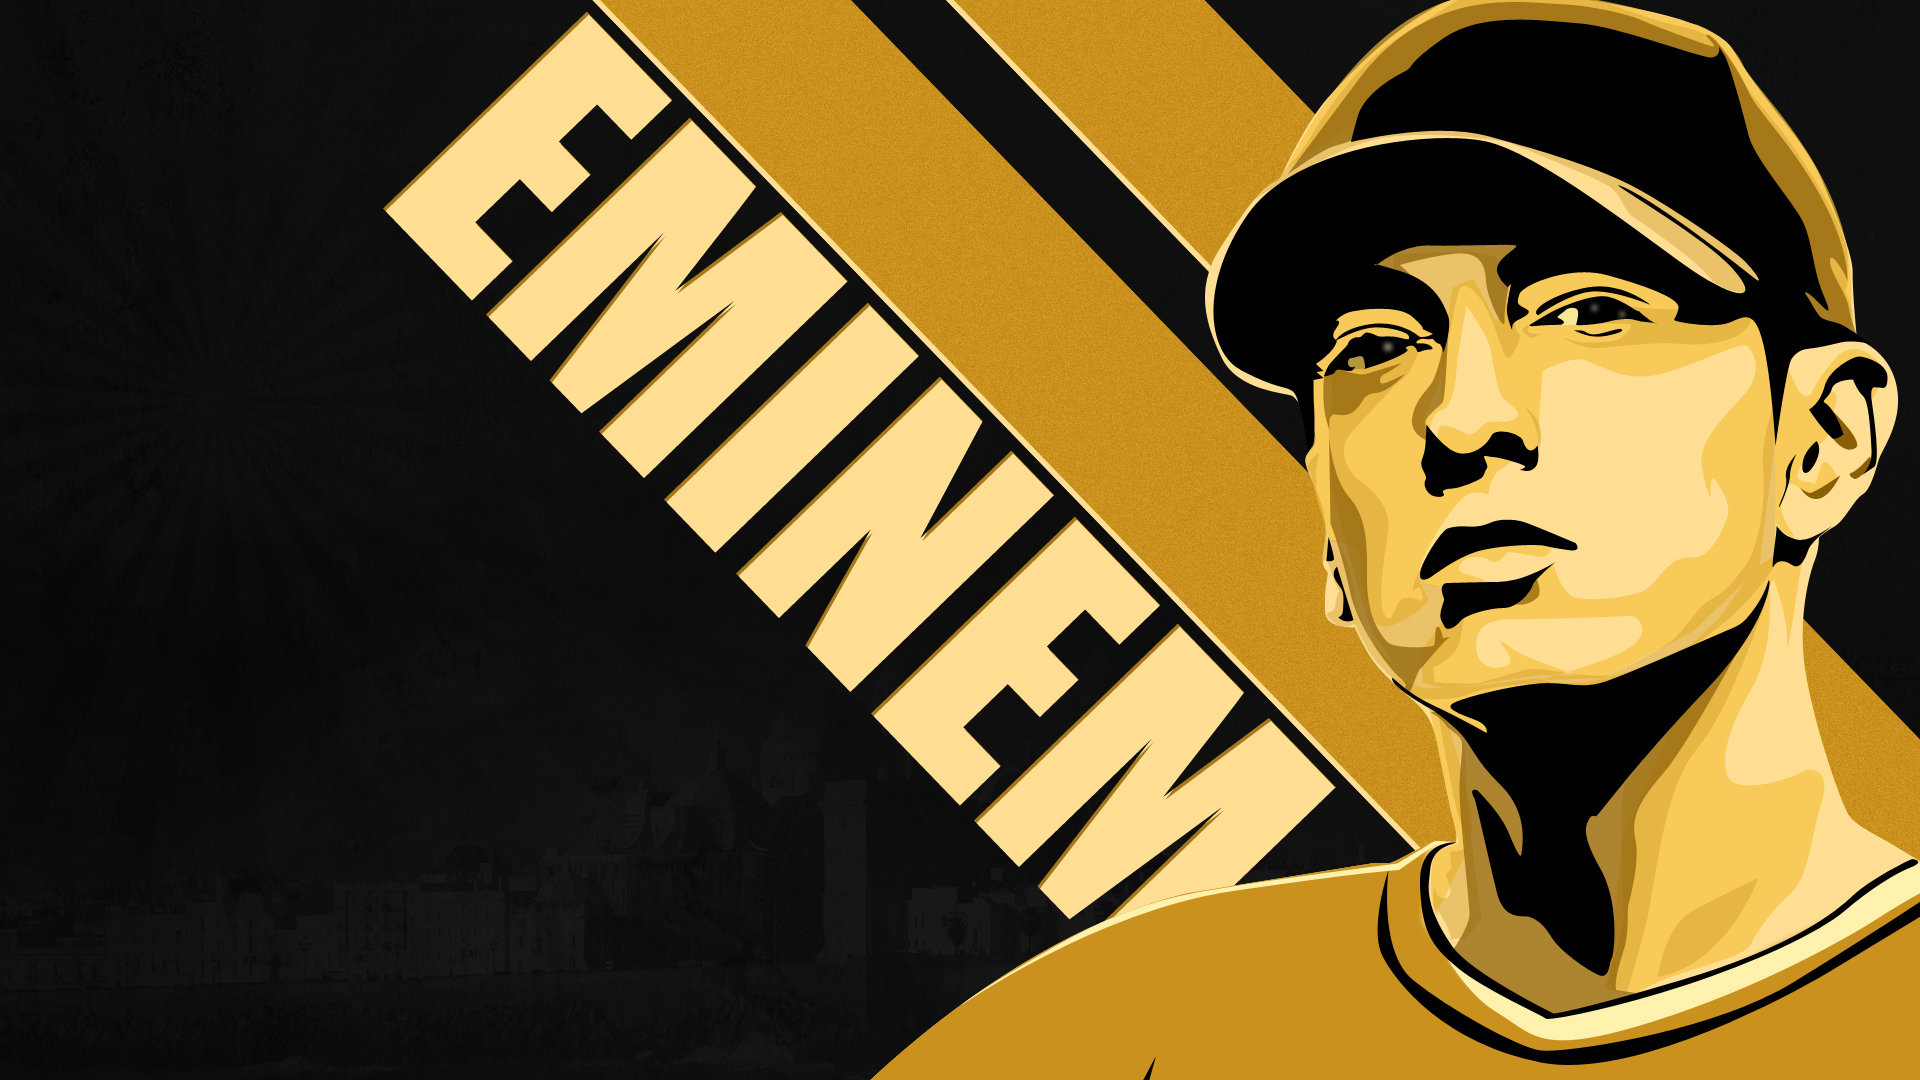 Download hd 1080p Eminem PC background ID:452204 for free